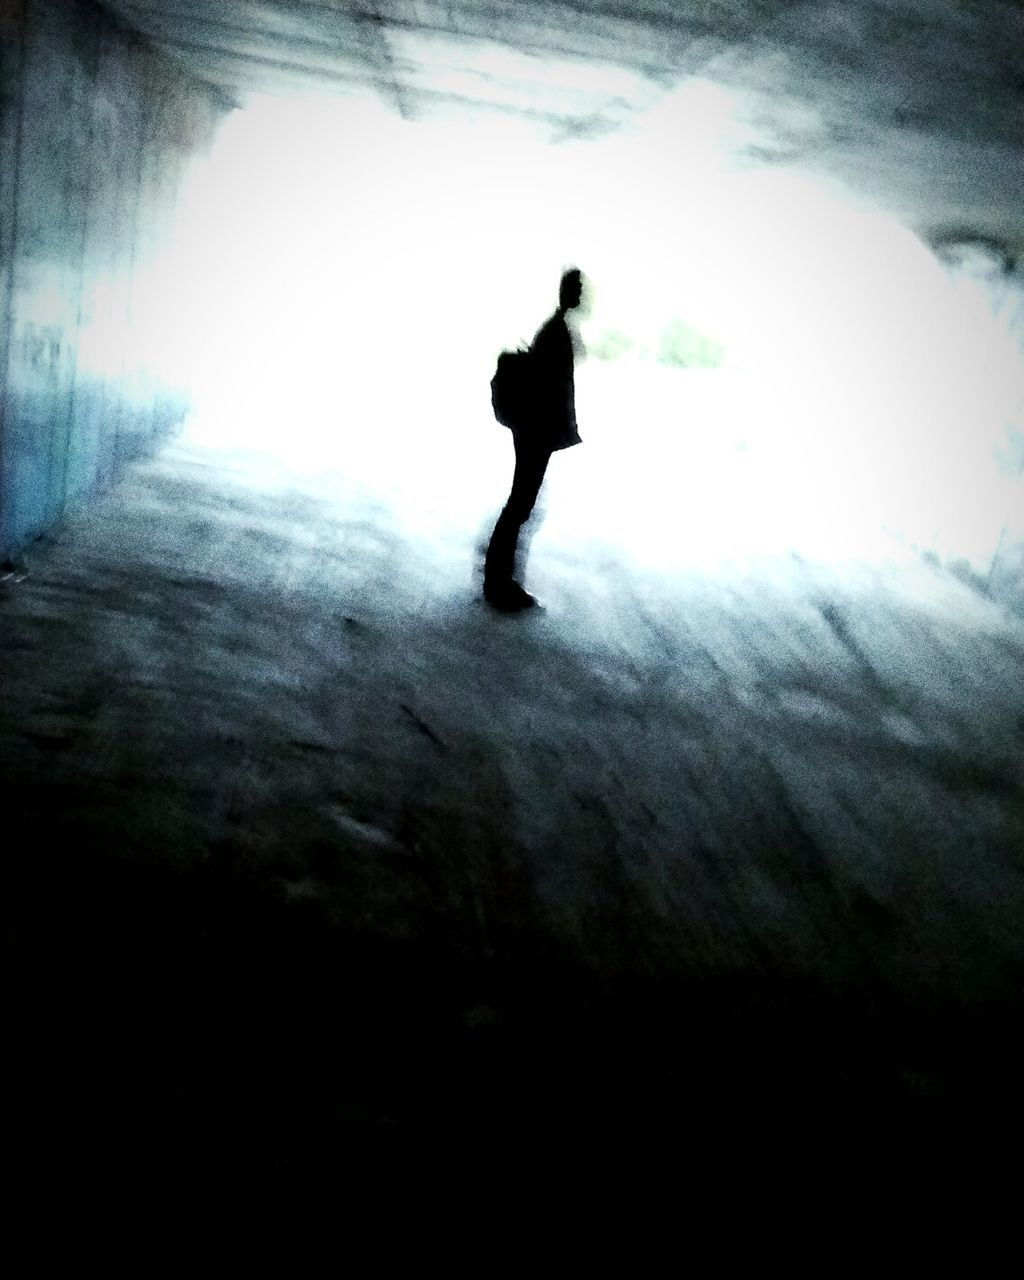 Silhouette Of Man Standing In Tunnel